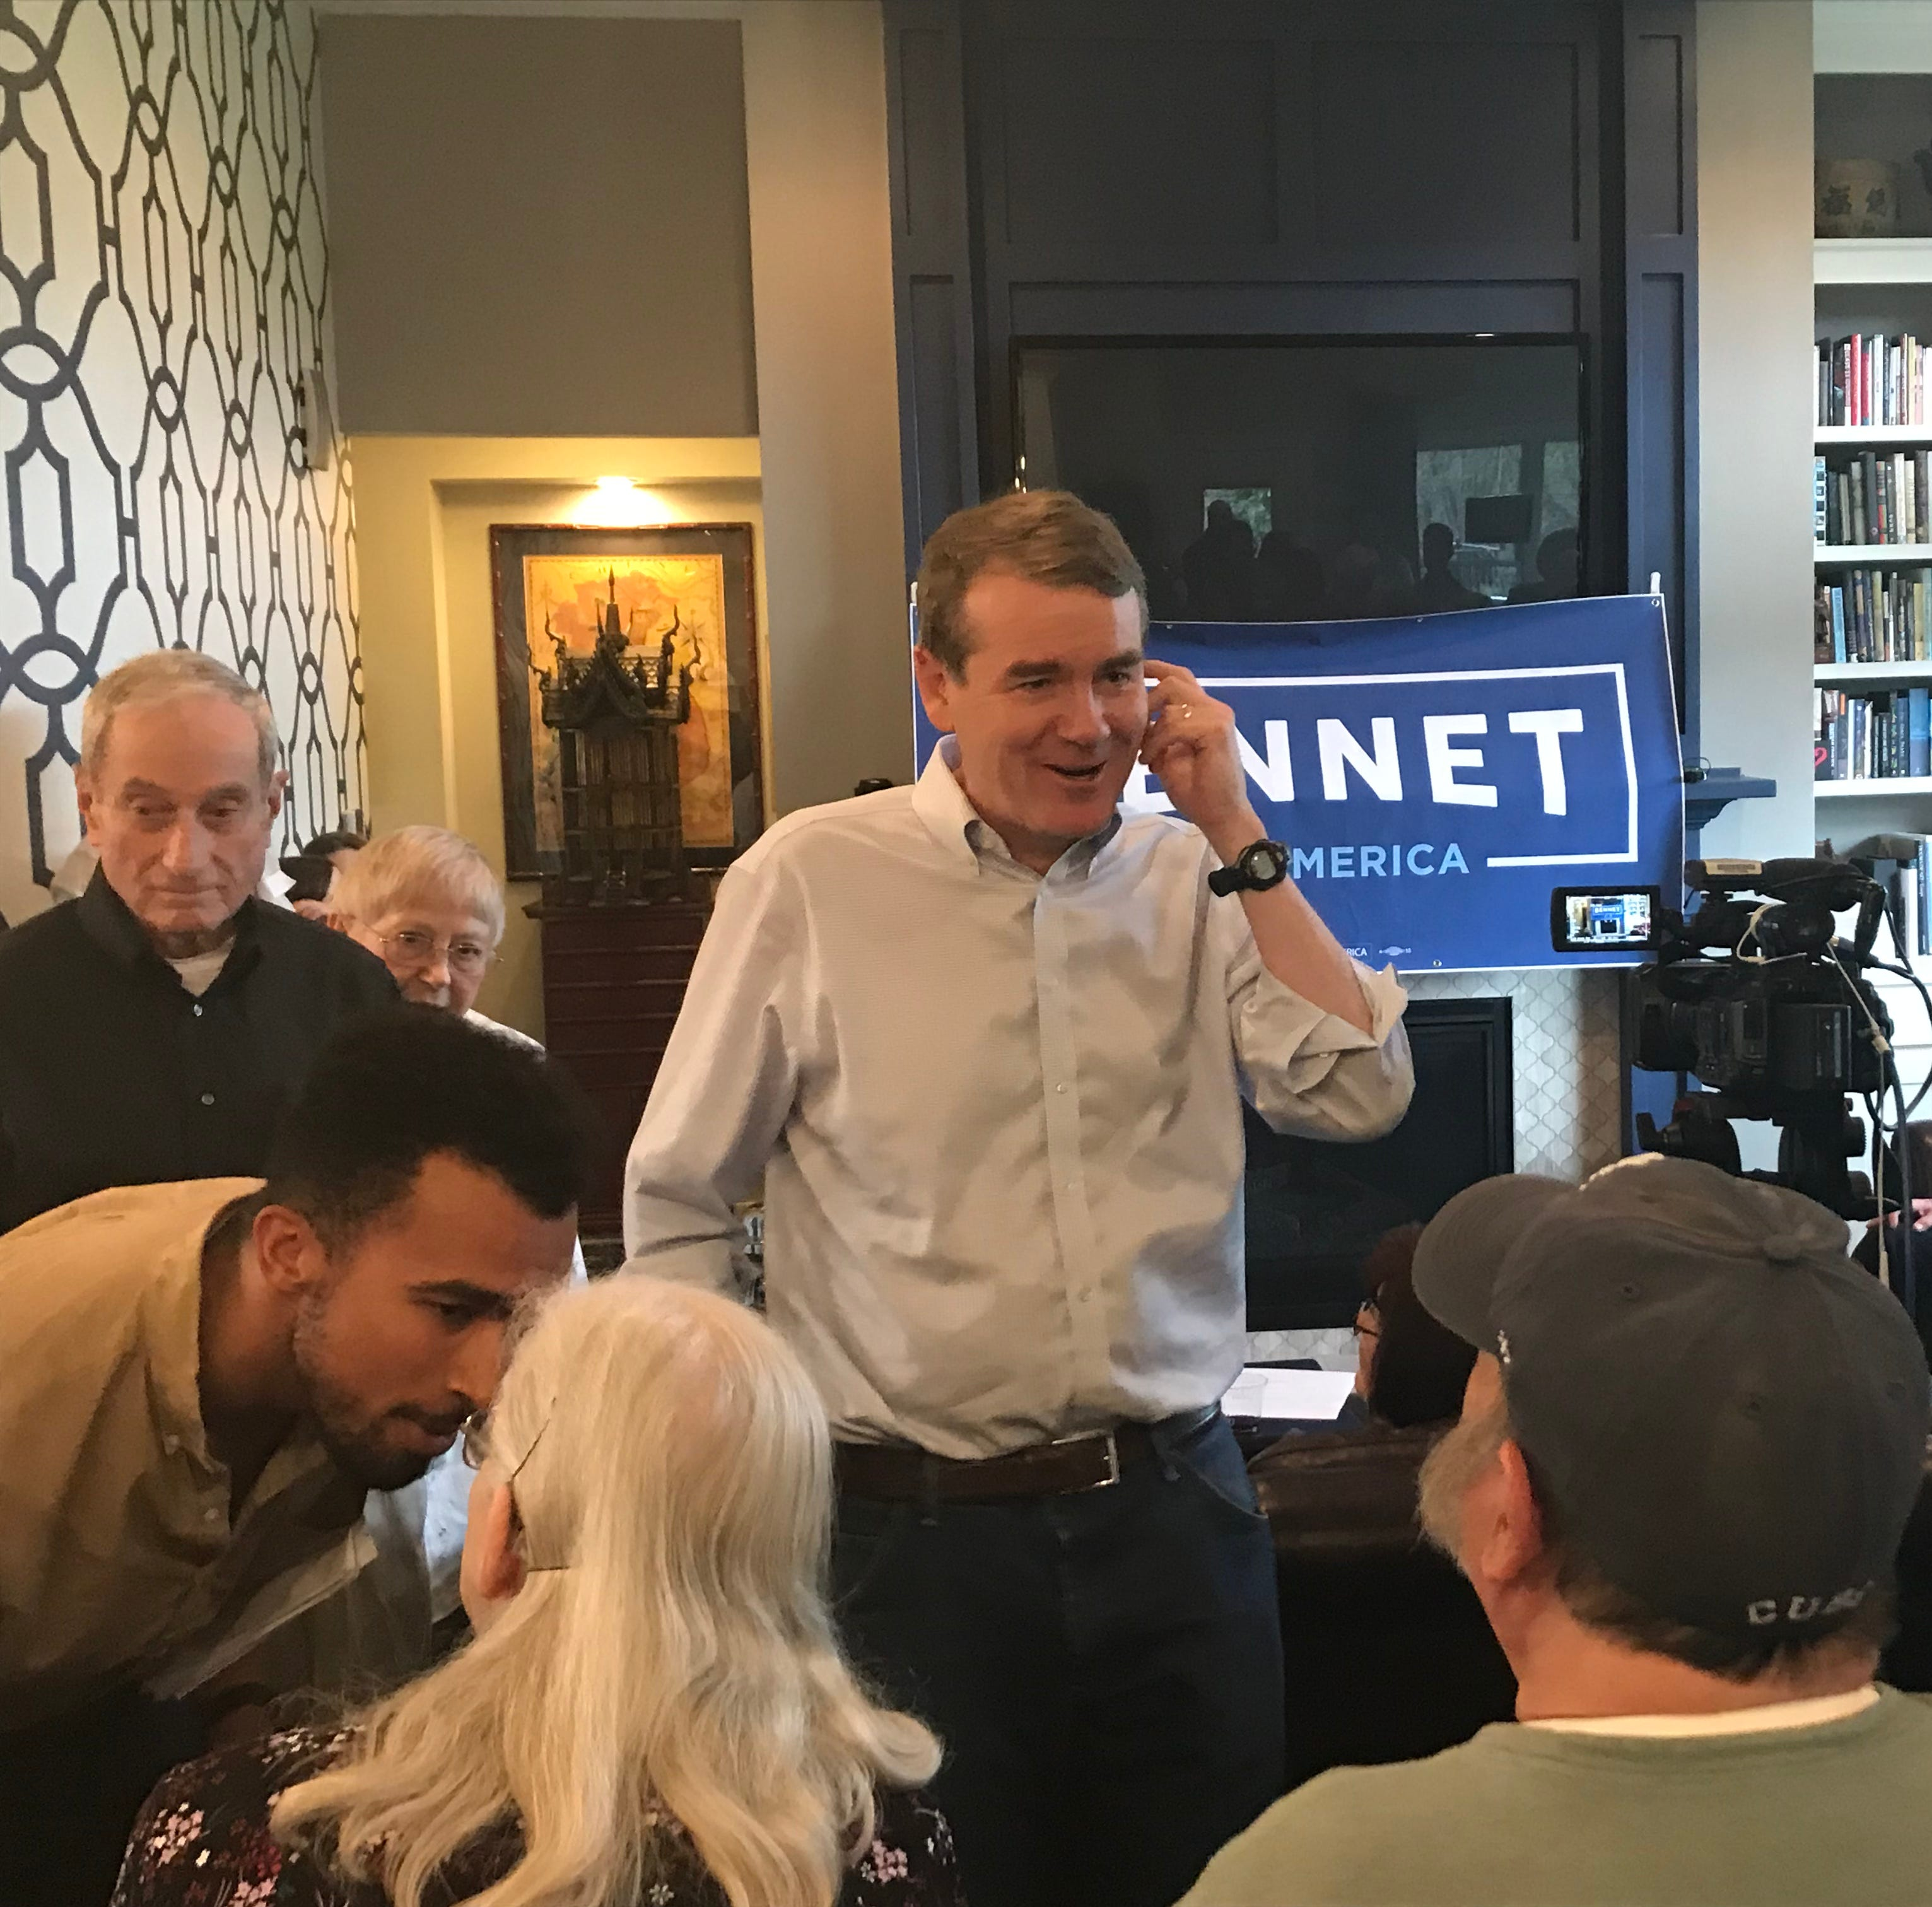 With clean bill of health, Michael Bennet begins his presidential campaign in Iowa